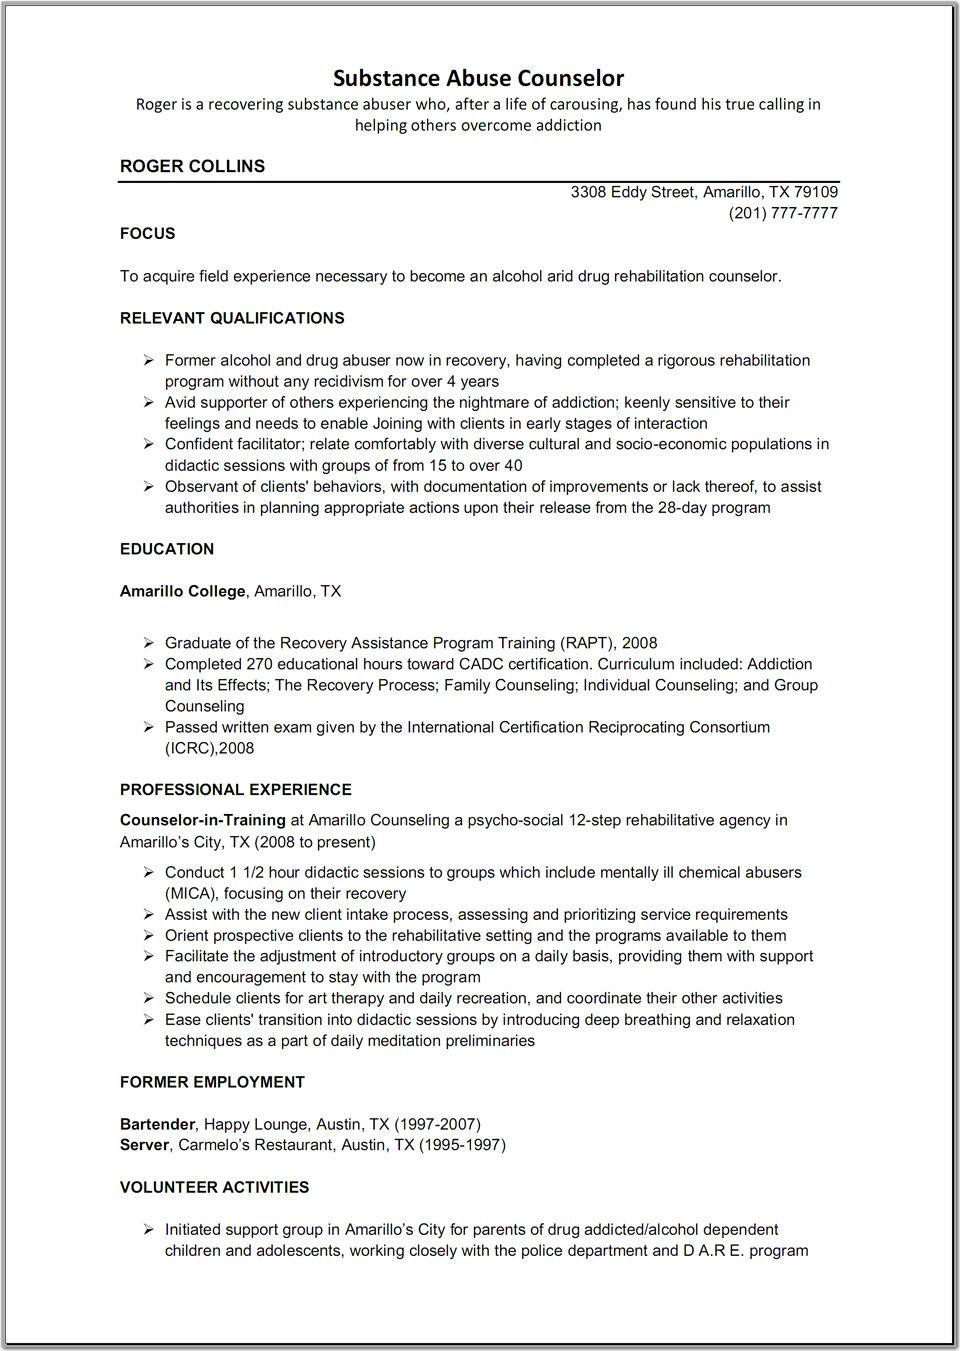 Substance Abuse Counselor Resume Template | resume template ...